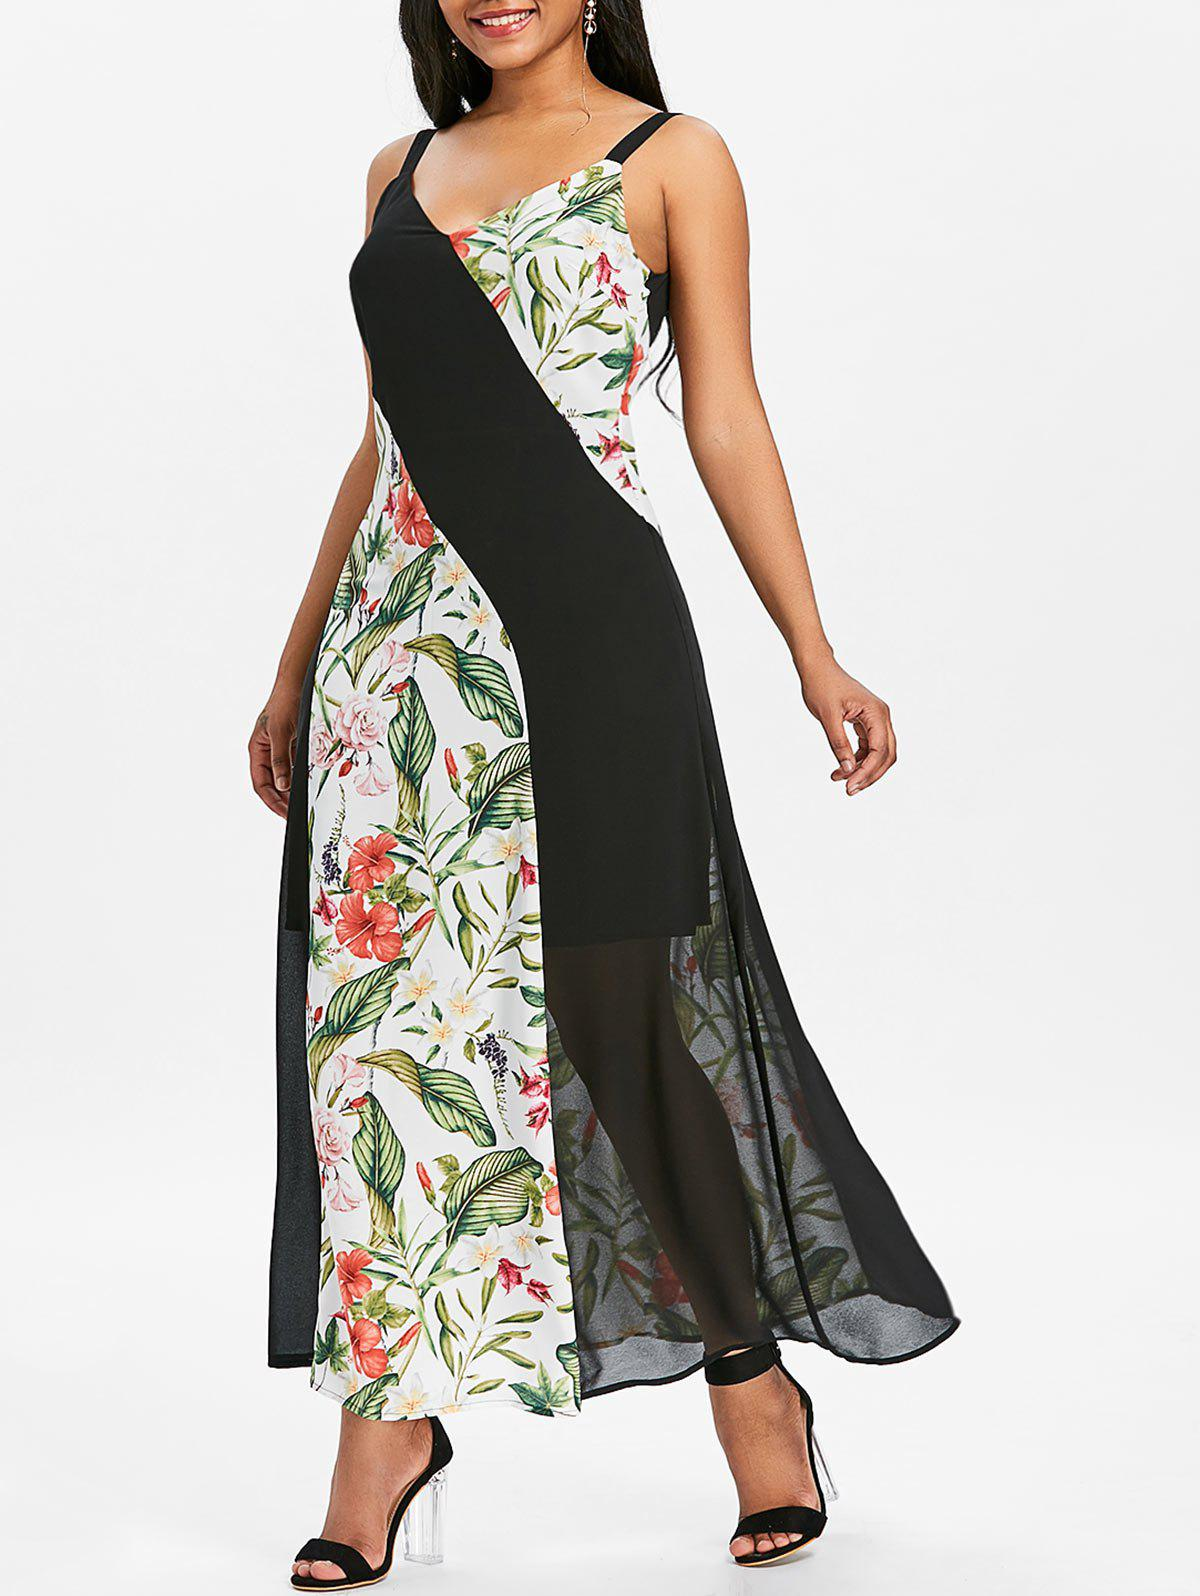 Chiffon Maxi Dress with Floral Print Panels - multicolor XL